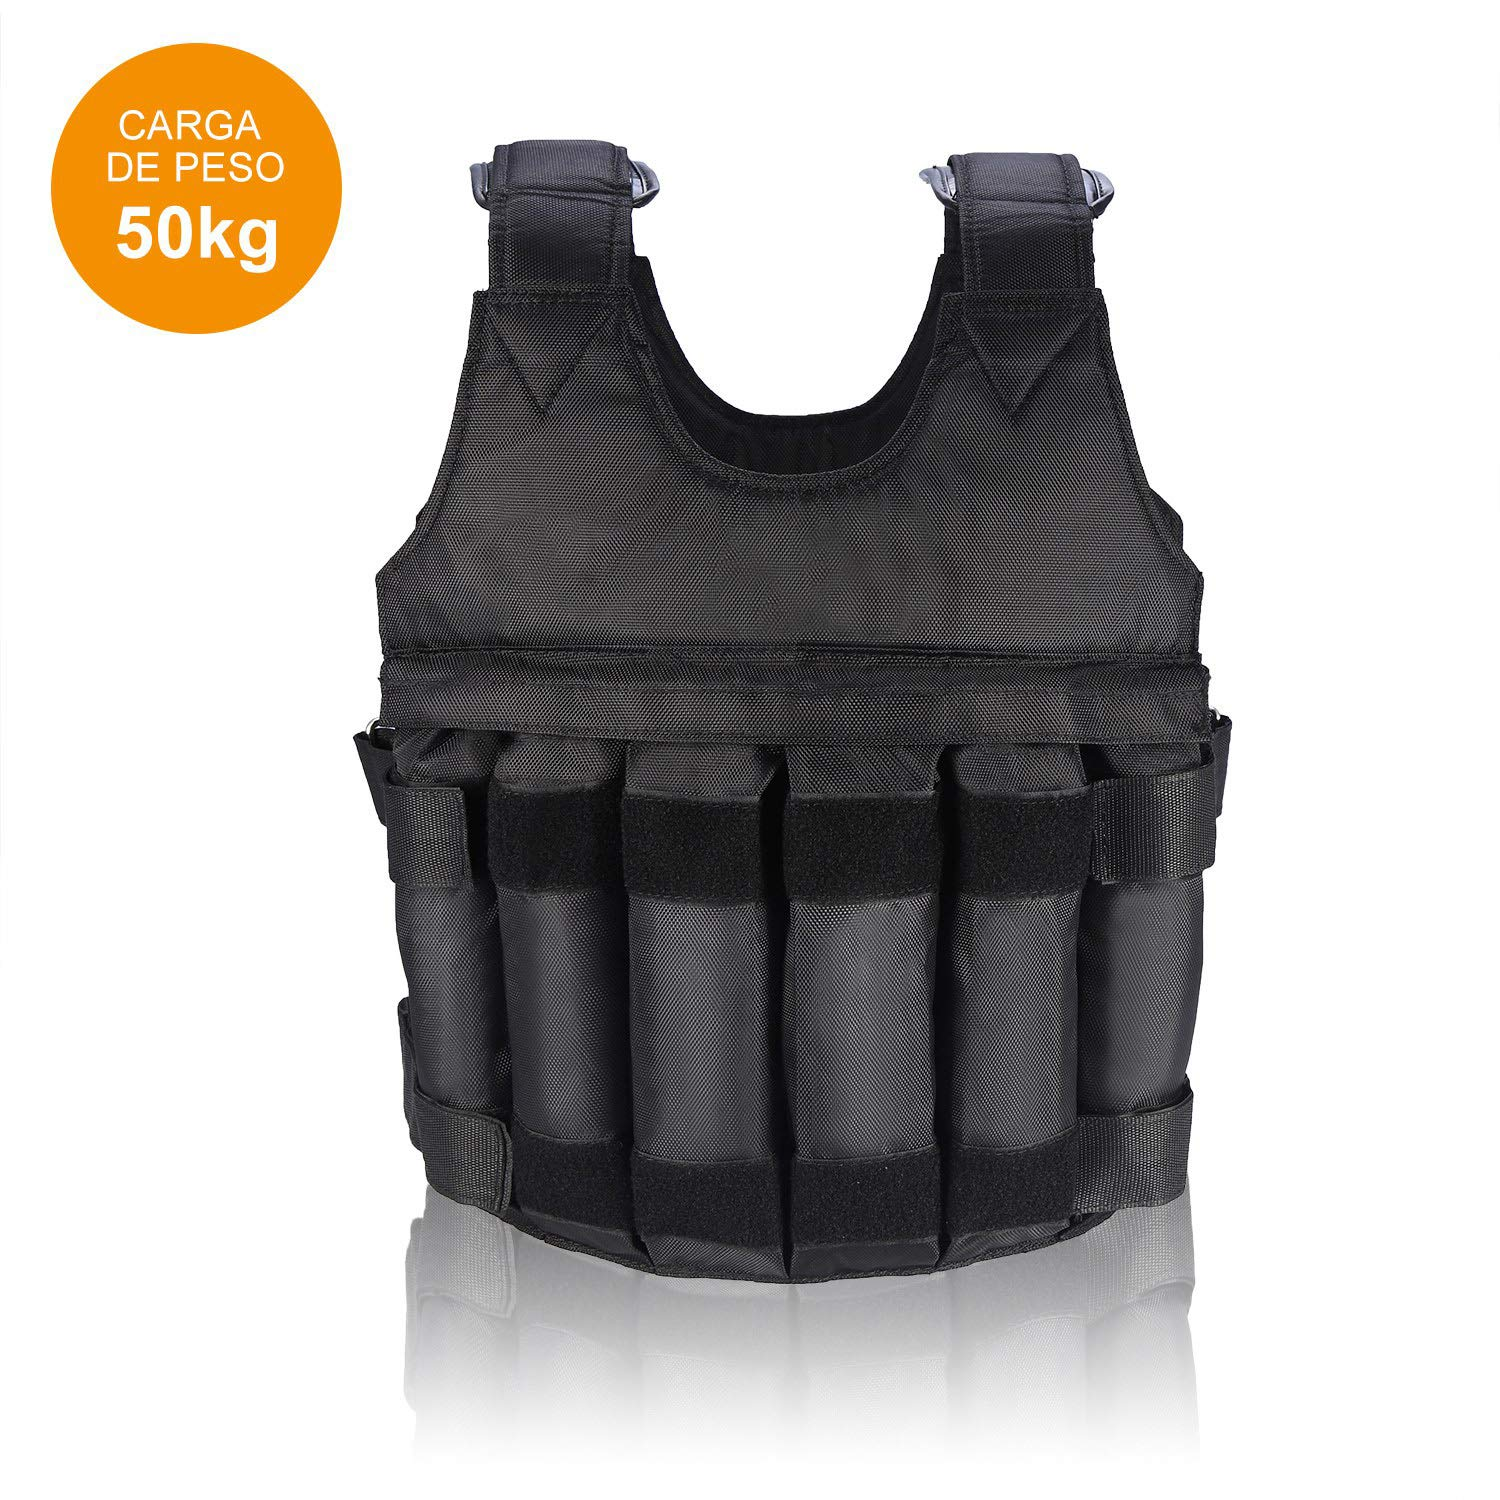 Xingny 110LB 50KG Adjustable Workout Weighted Vest Exercise Strength Training Fitness